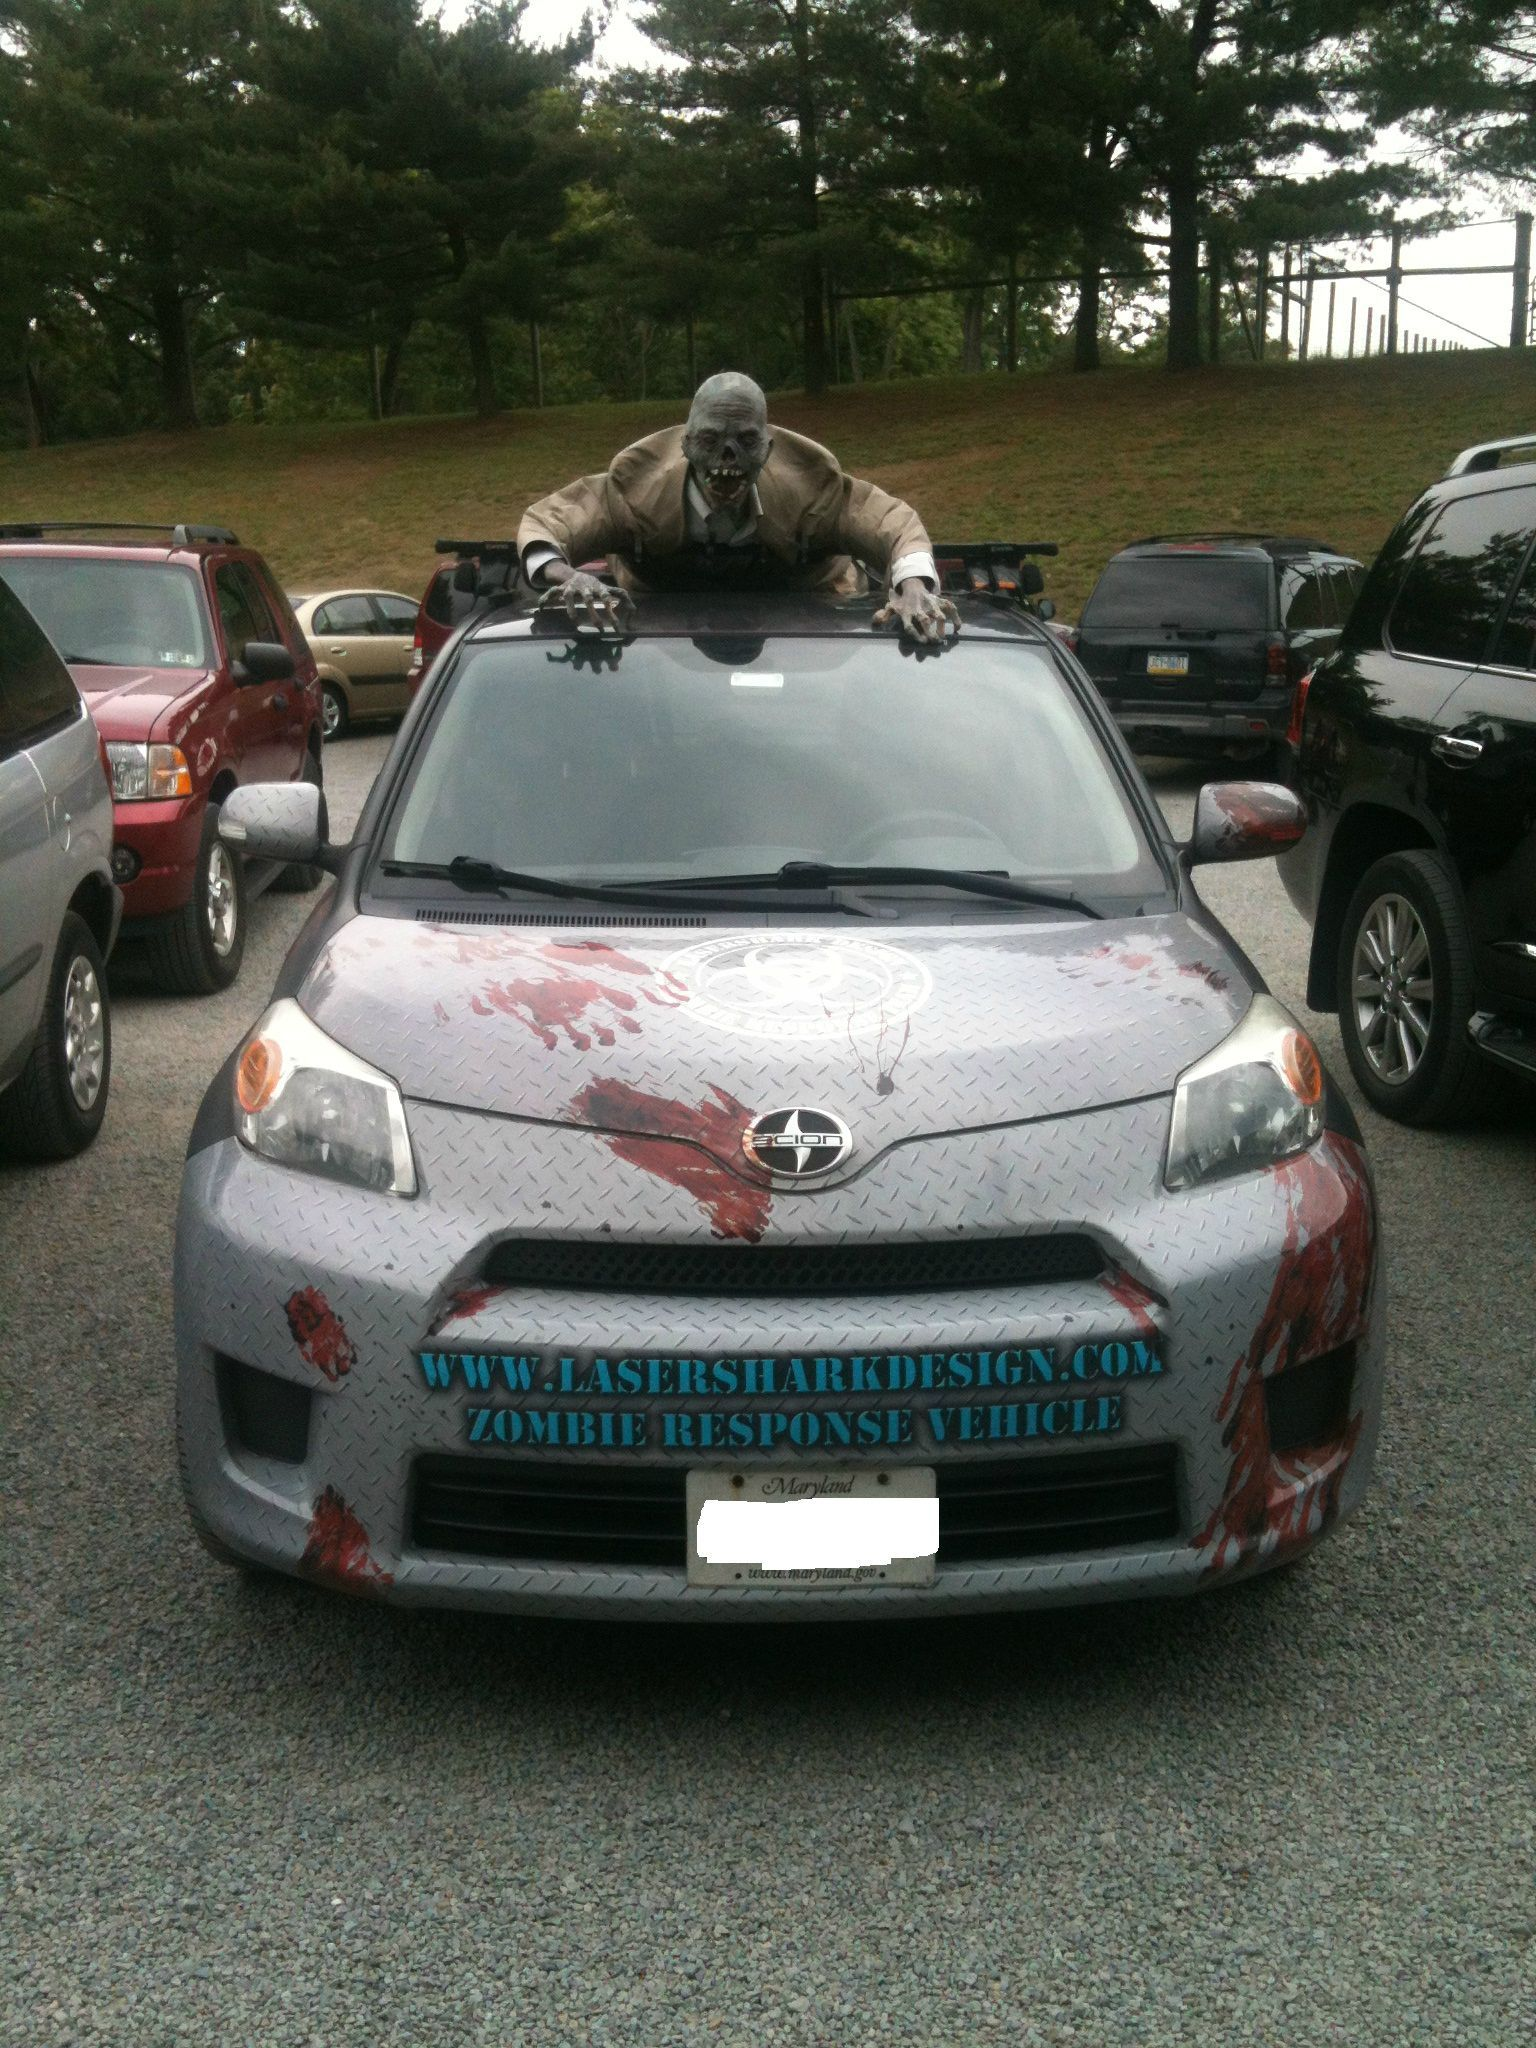 saw this car in the zoo parking lot imgur